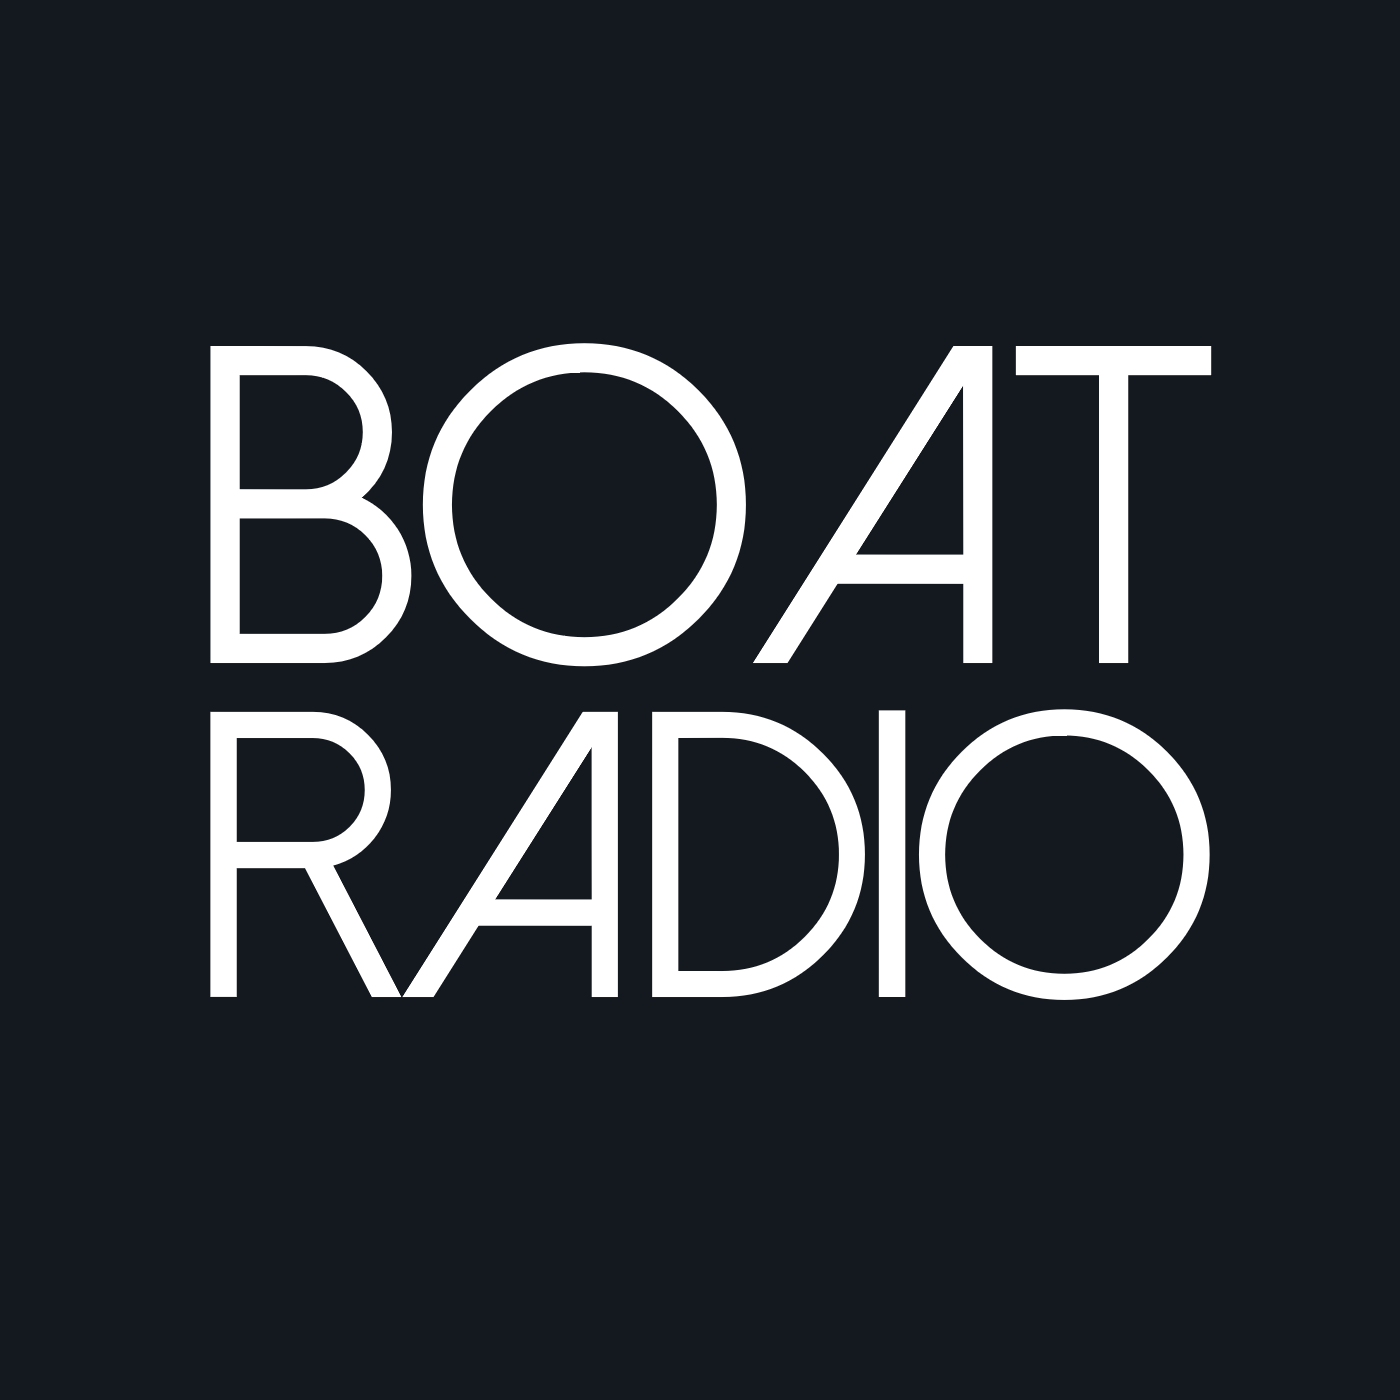 gm radio cal err battery level indicator circuit diagram boat by on apple podcasts